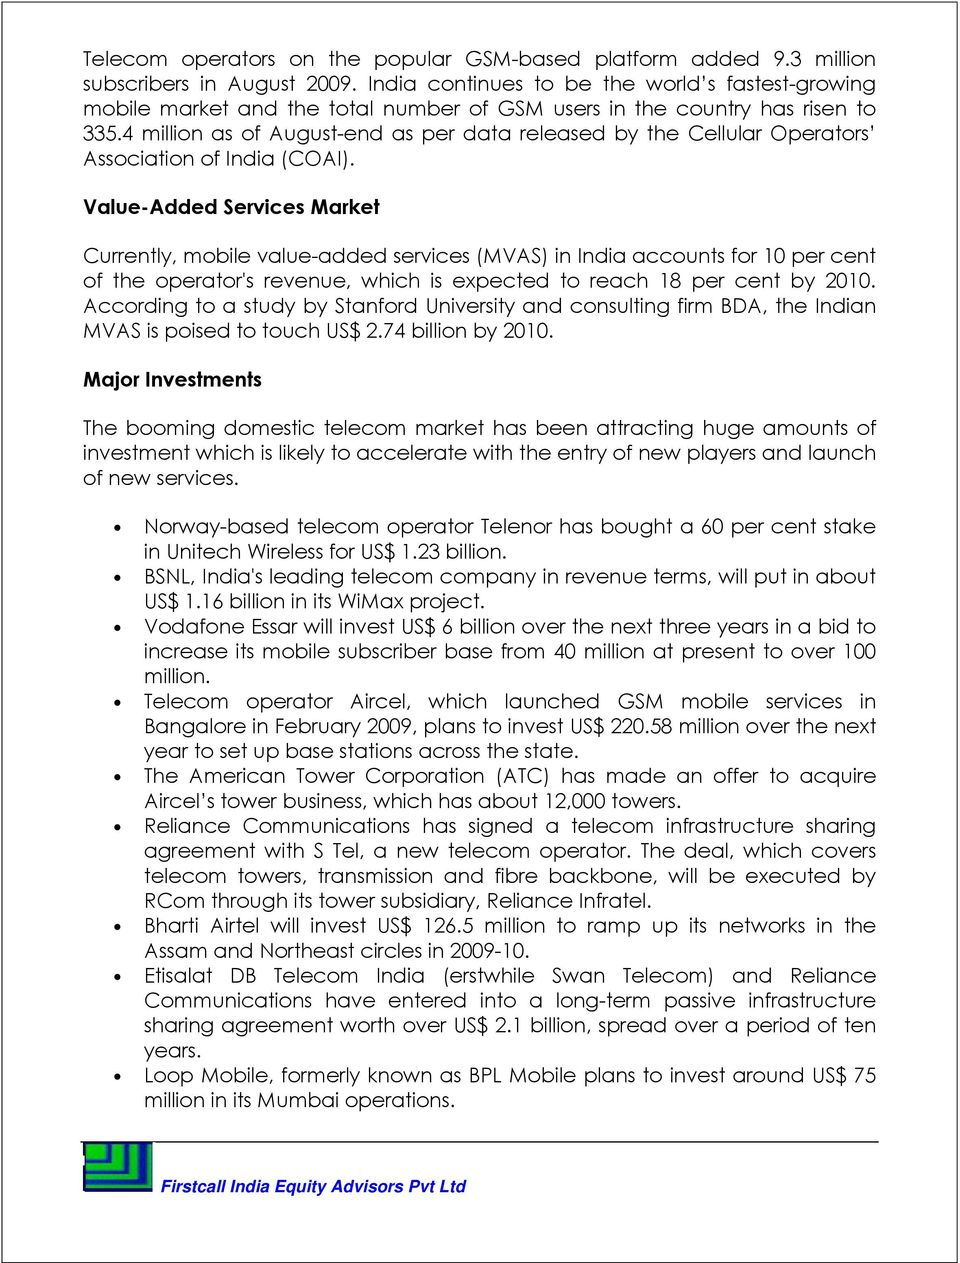 Reliance Communications Ltd (RCOM) - PDF